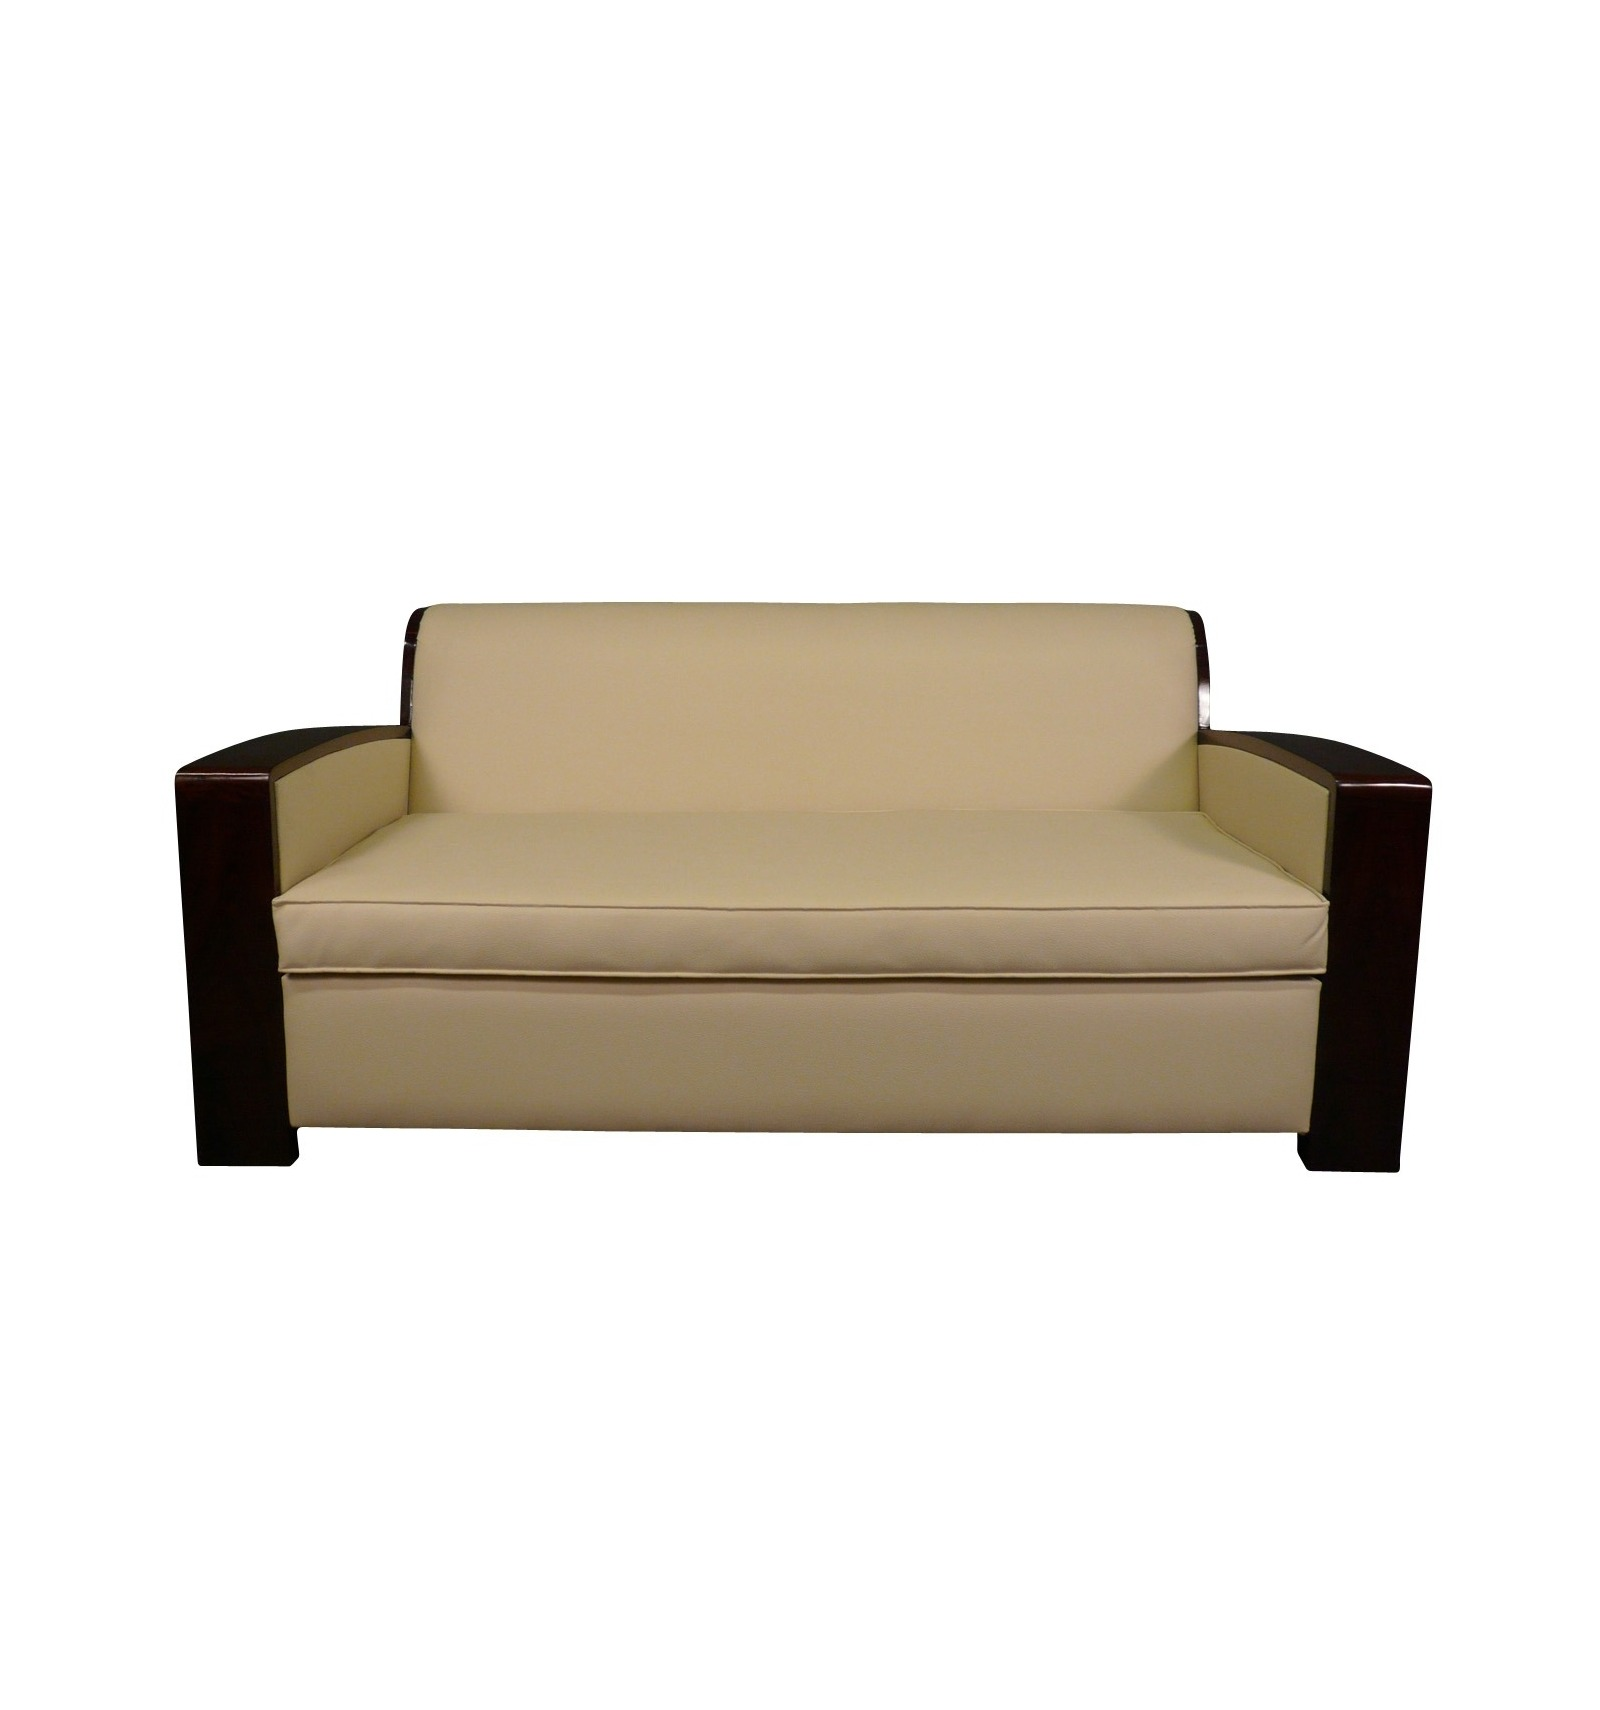 Paris Art Deco Sofa Art Deco Furniture